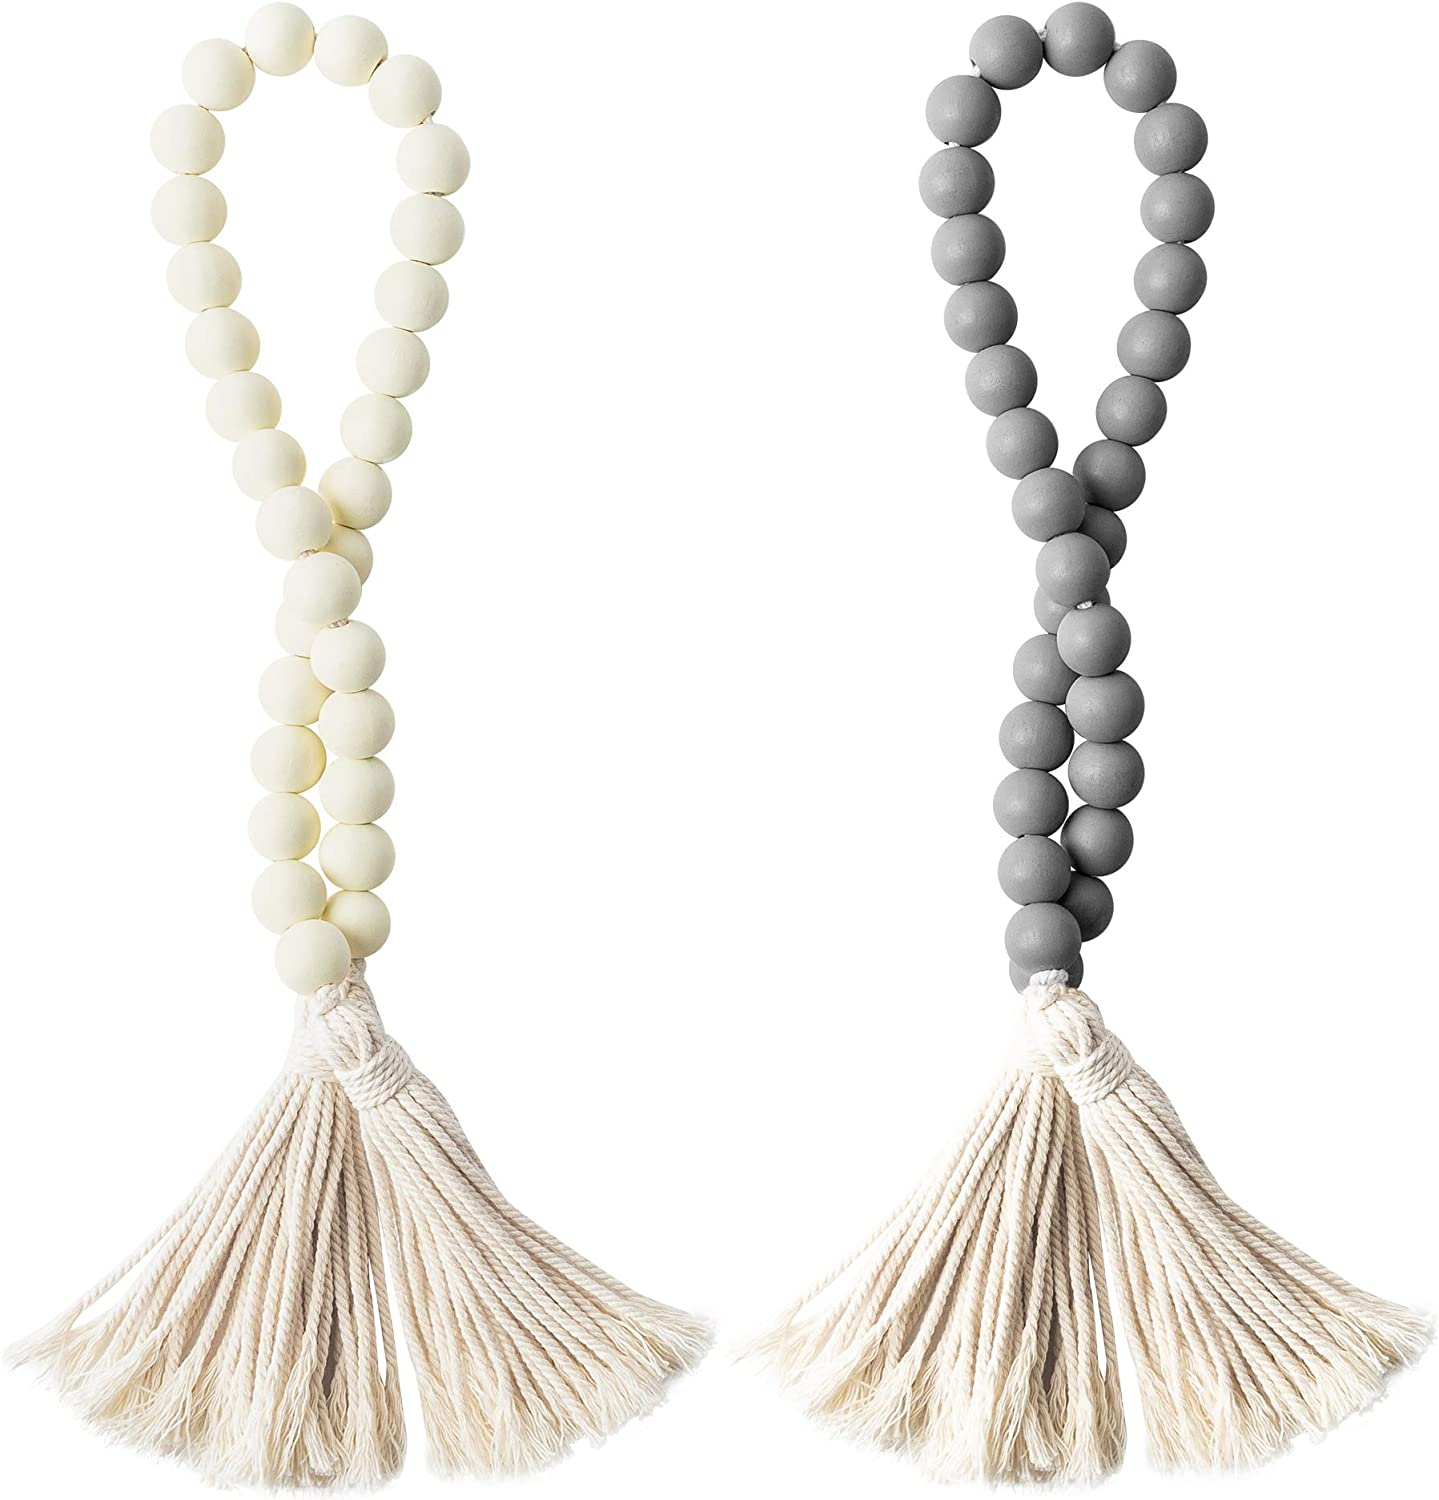 2 Pcs Classic Wood Beads Tassel, 27 Inch White & Gray Wood Bead Garland Farmhouse Rustic Beads with Jute Rope Plaid Tassel Natural Wood Beads for Home Décor